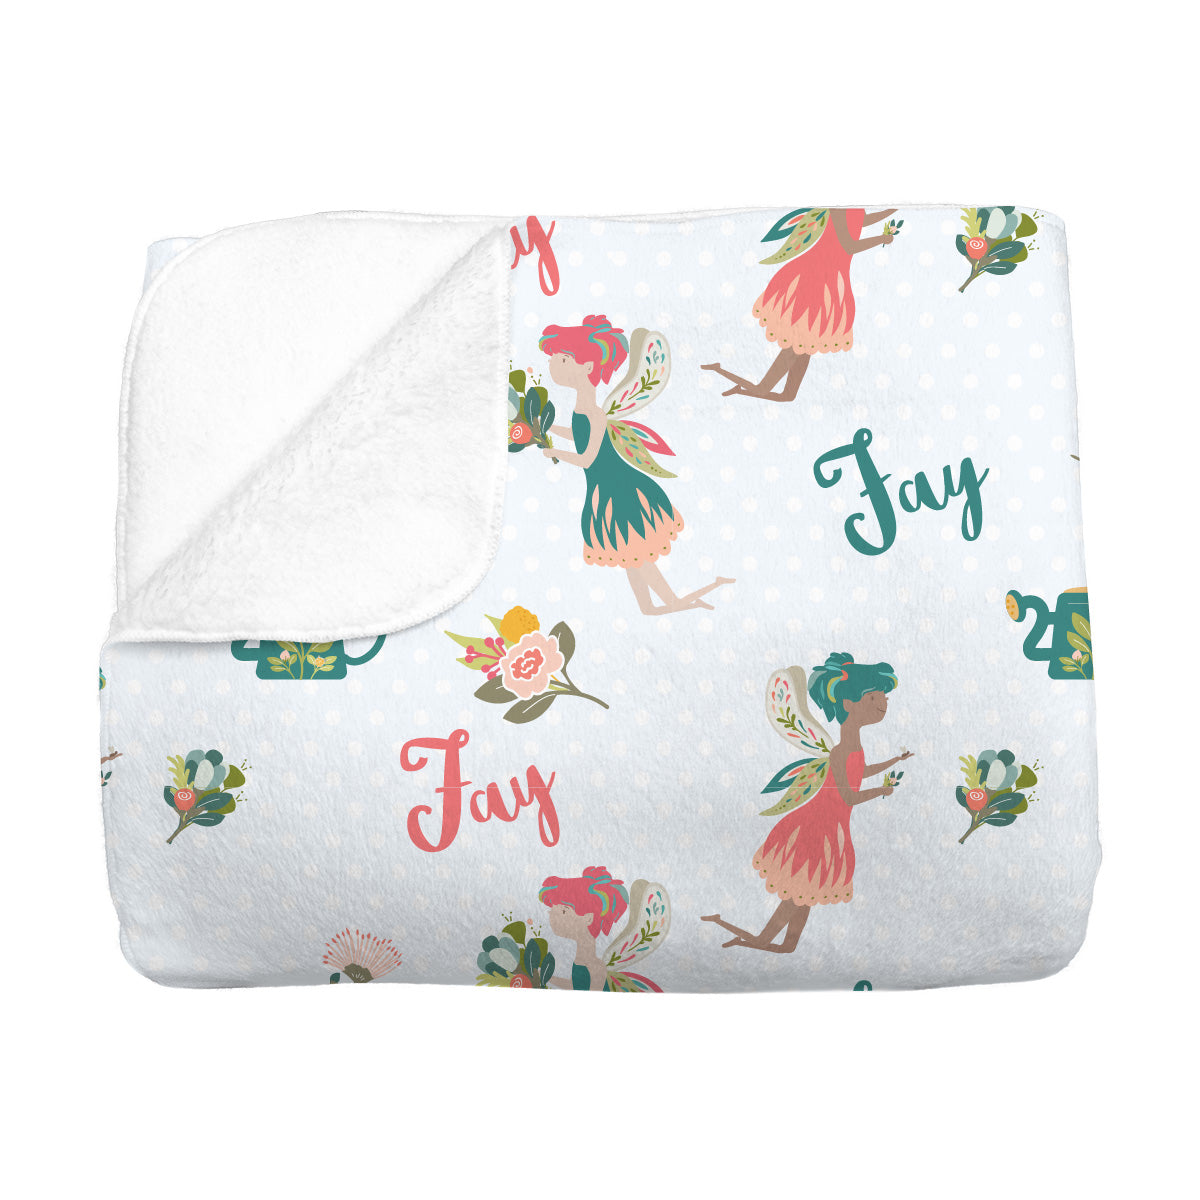 Fay's Fairies | Big Kid Blanket